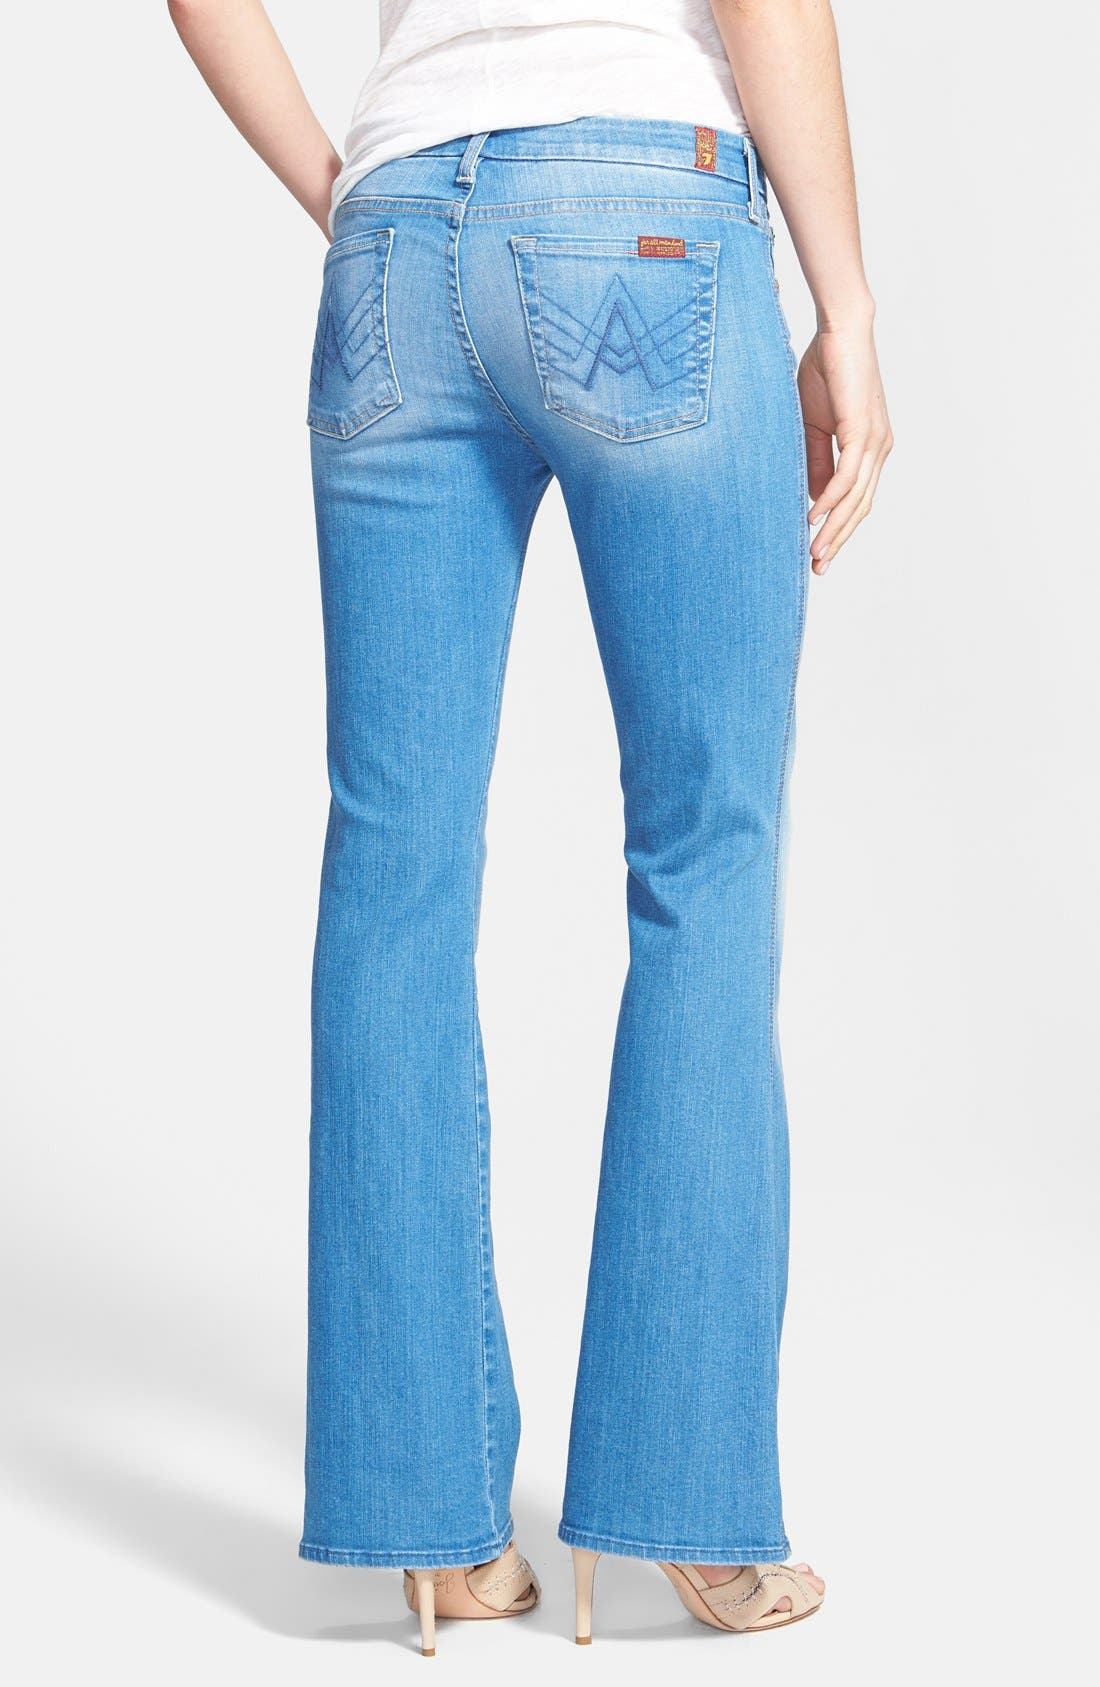 Alternate Image 2  - 7 For All Mankind® 'A-Pocket' Bootcut Jeans (Petite) (Dutch Blue)